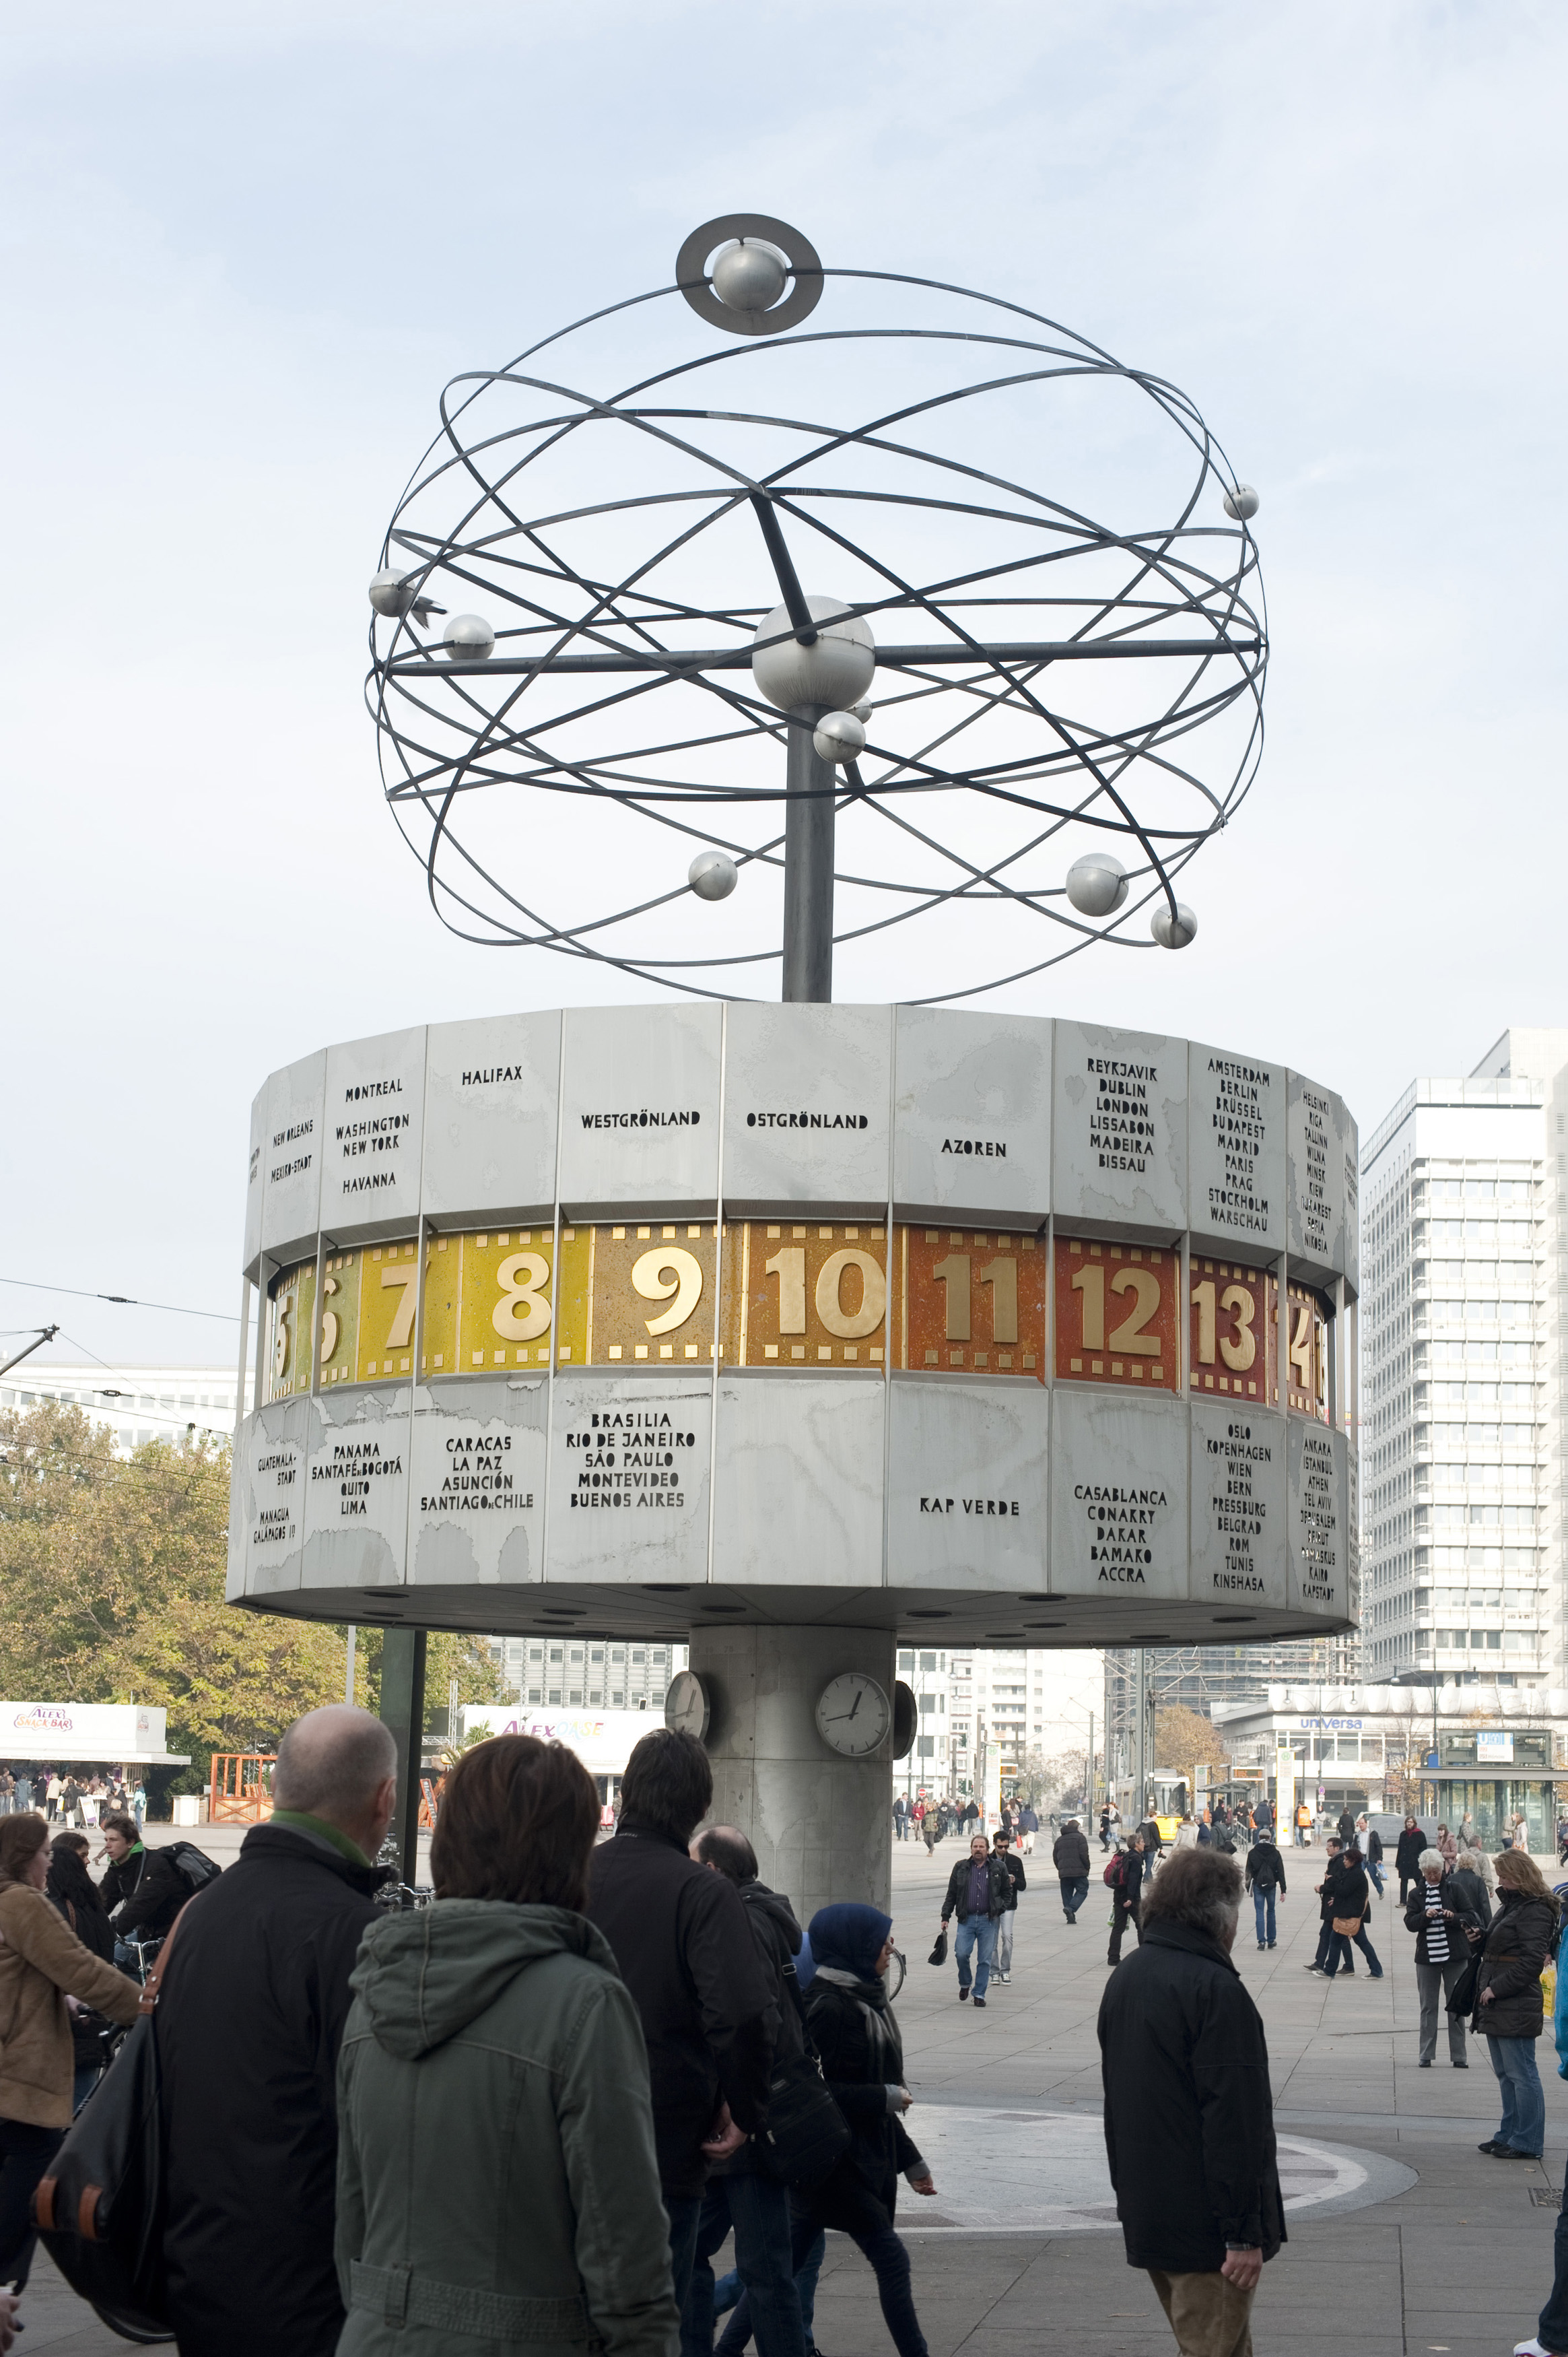 People viewing the World Time Clock, or Weltzeituhr, in Alexanderplatz, Berlin with the revolving planets above and the cylinder bearing 24 international time zones and names of major cities below